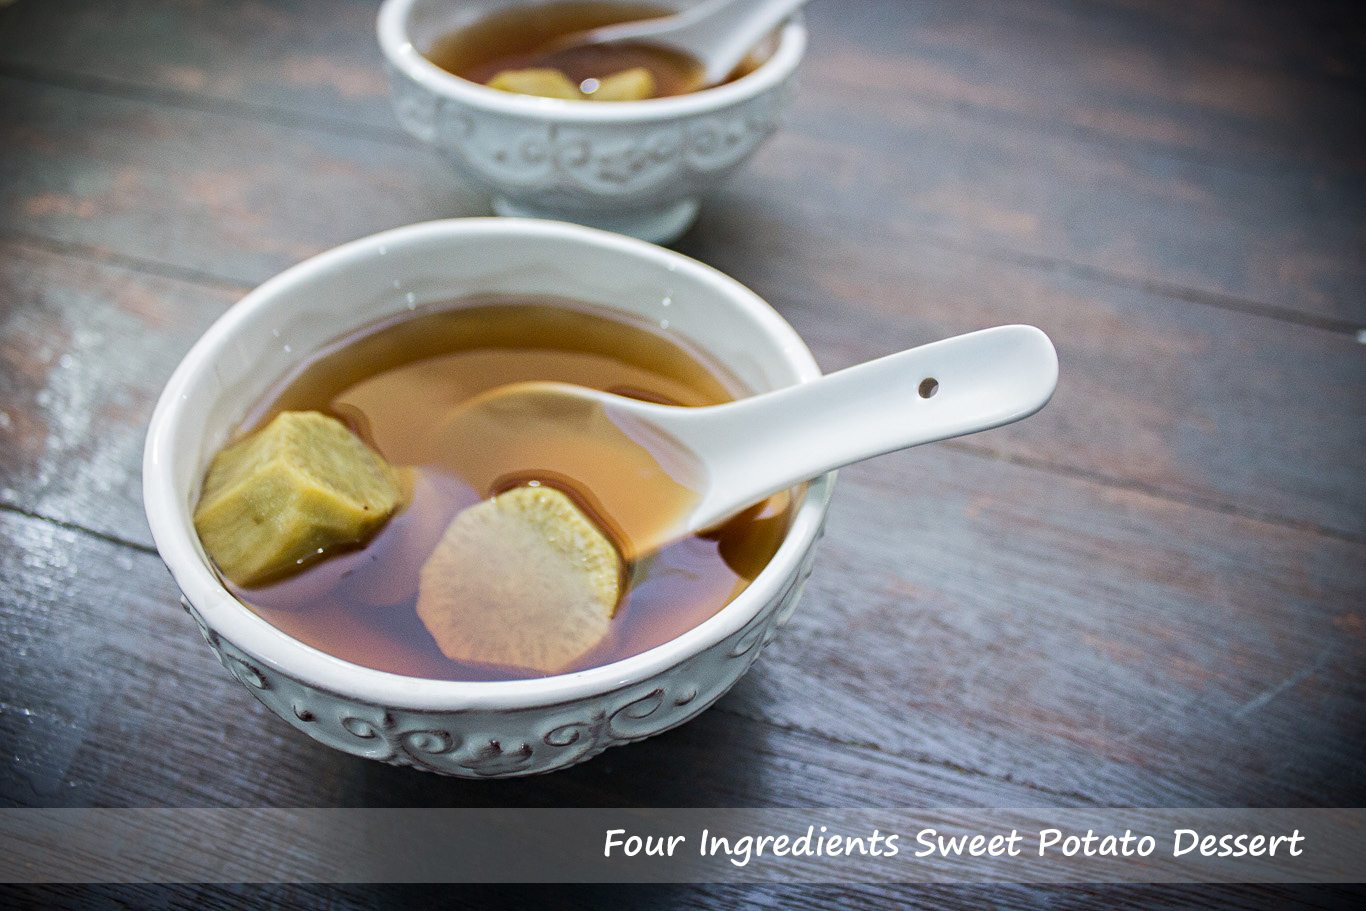 Four Ingredients Sweet Potato Dessert